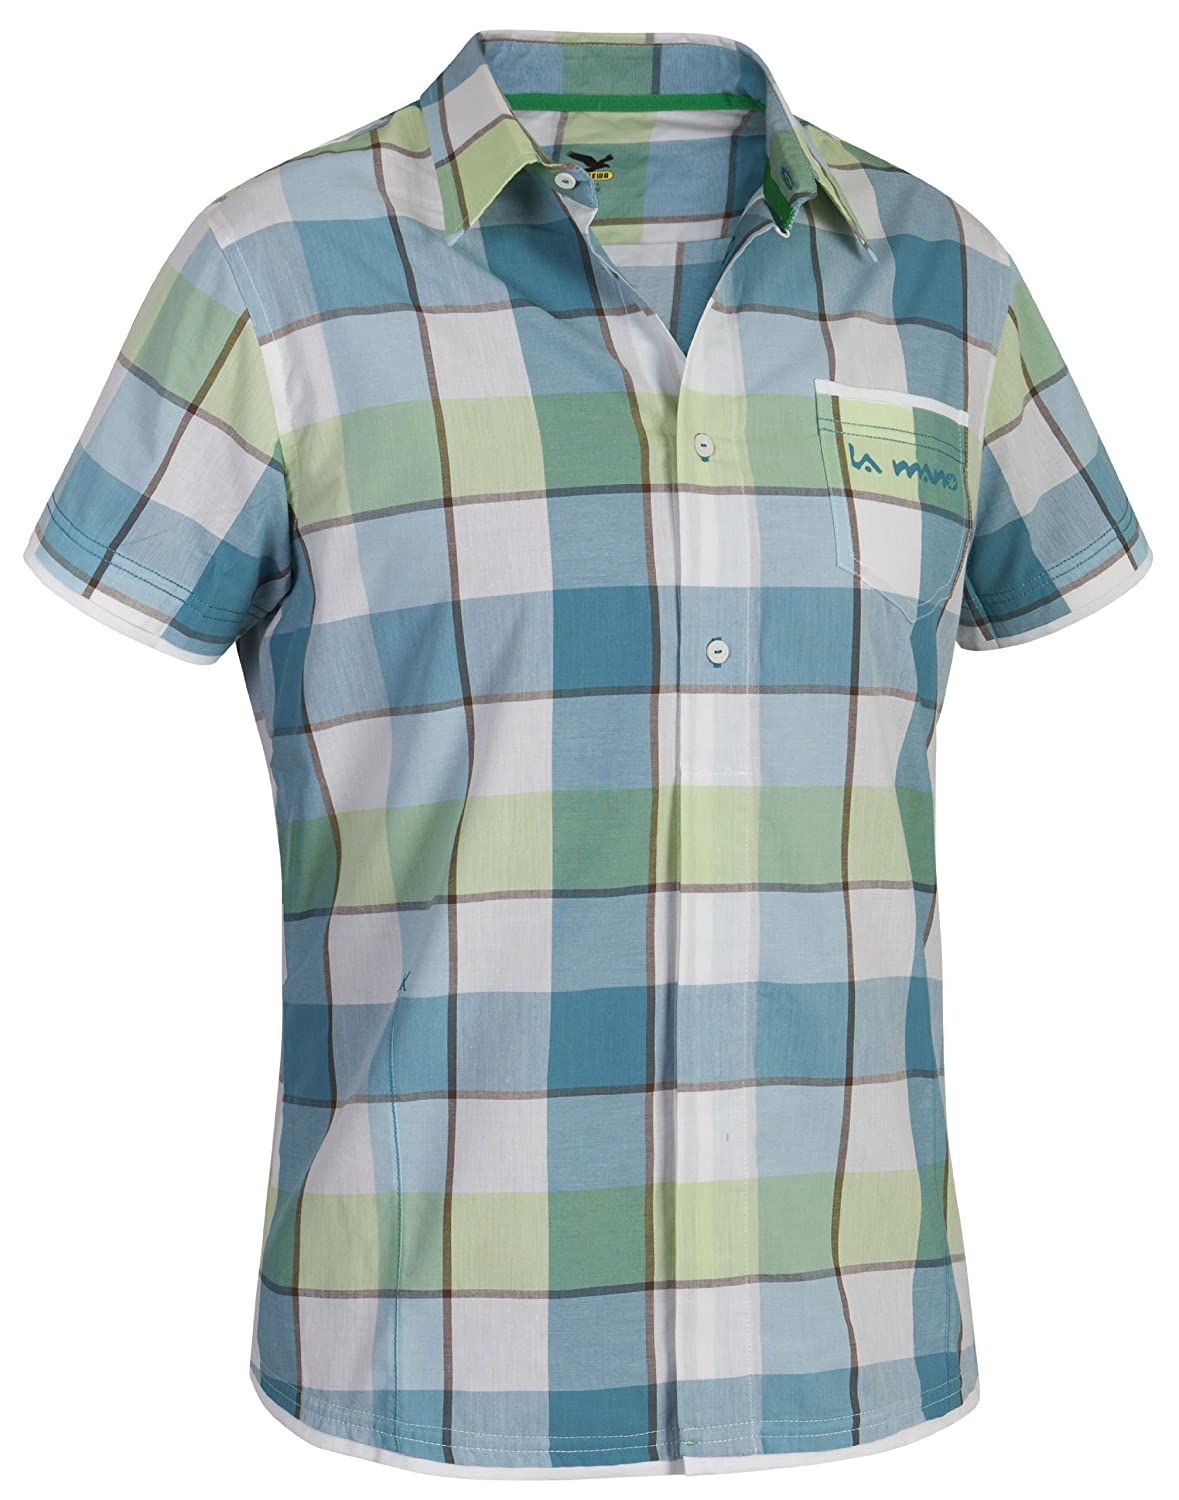 Salewa Herren Shirt Henry Dry Am Short Sleeve 827